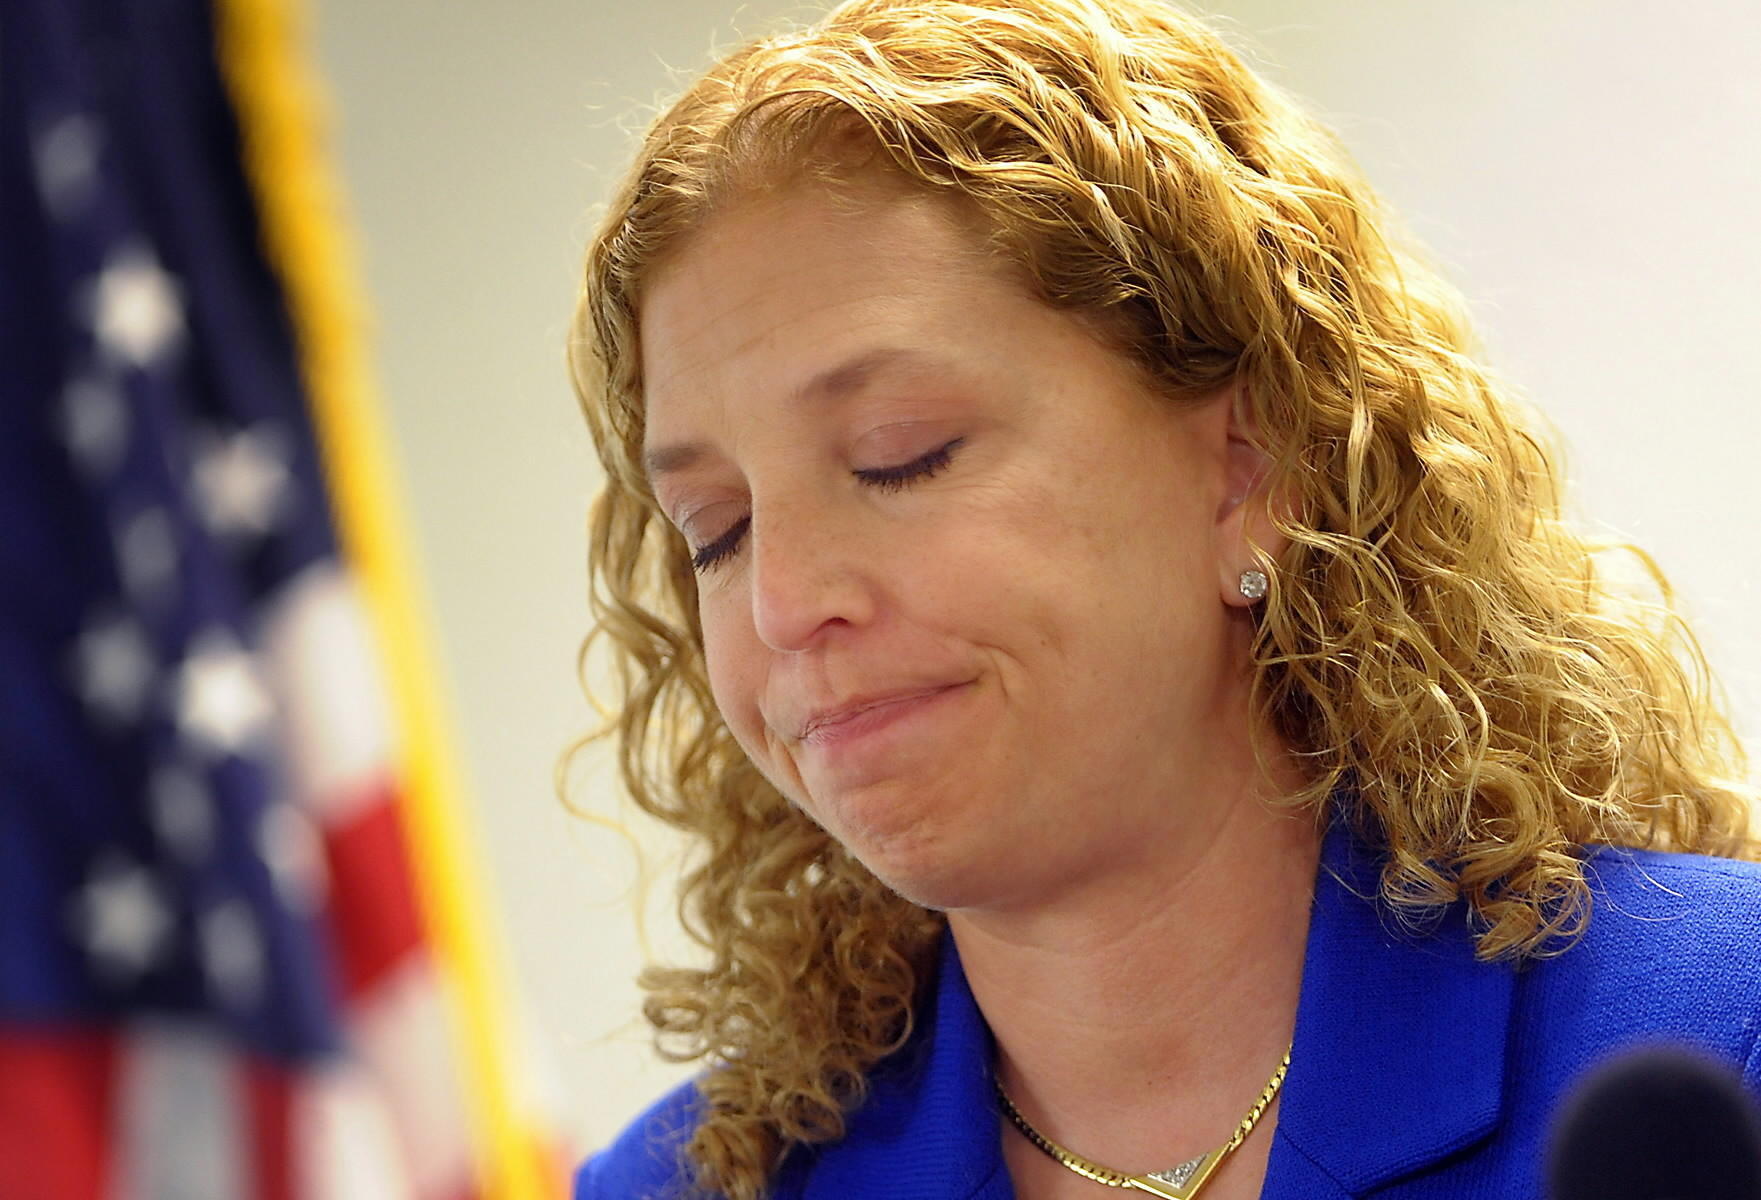 U.S. Rep. Debbie Wasserman Schultz, D-Weston, shows obvious dismay at a press conference held Sunday evening at Ft. Lauderdale-Hollywood International Airport to discuss the shooting of her friend and colleague, Rep. Gabrielle Giffords, in Tucson, Arizona.